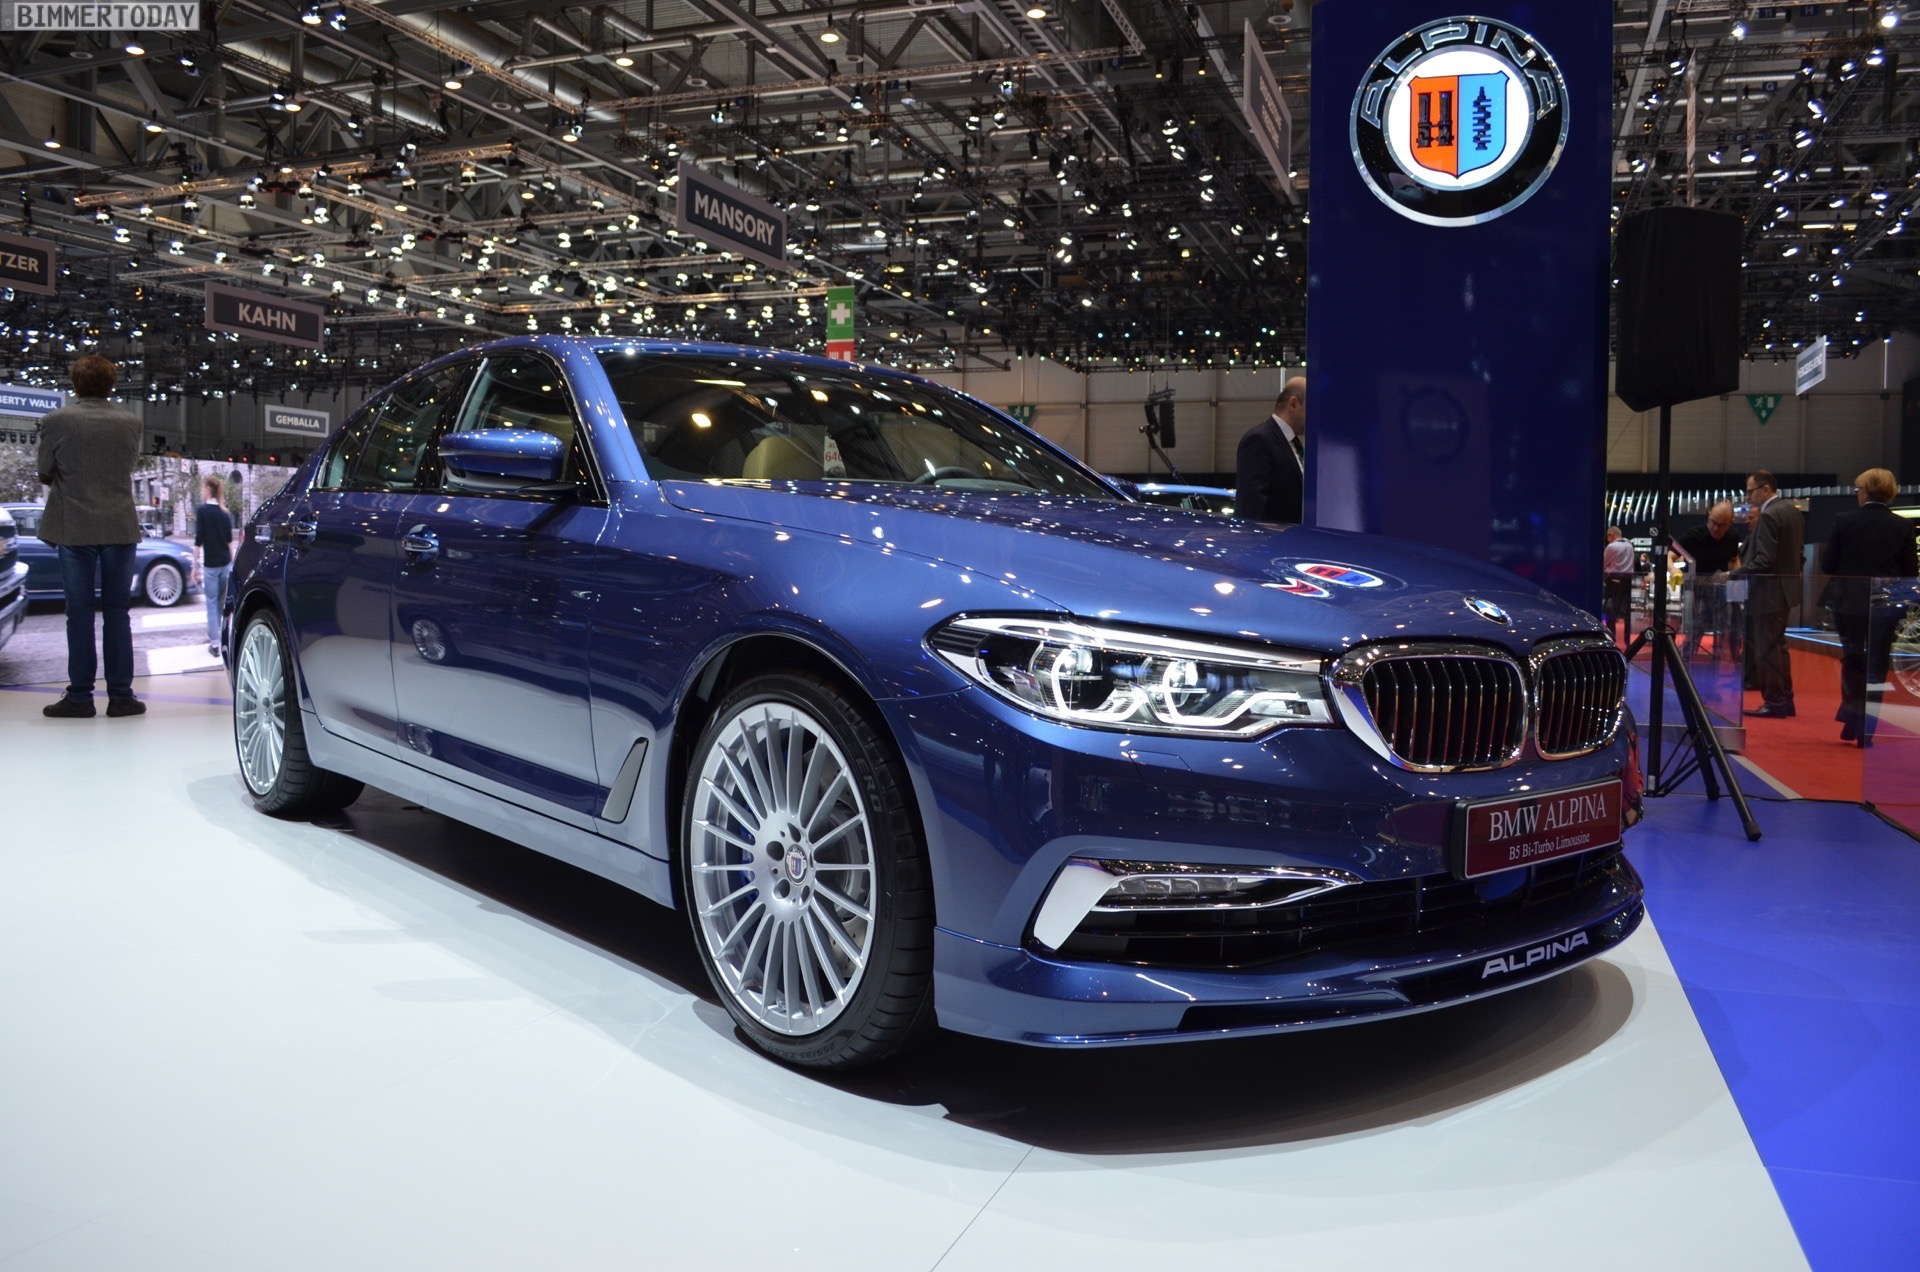 2017 Geneva World Debut Of The Bmw Alpina G30 B5 With 608